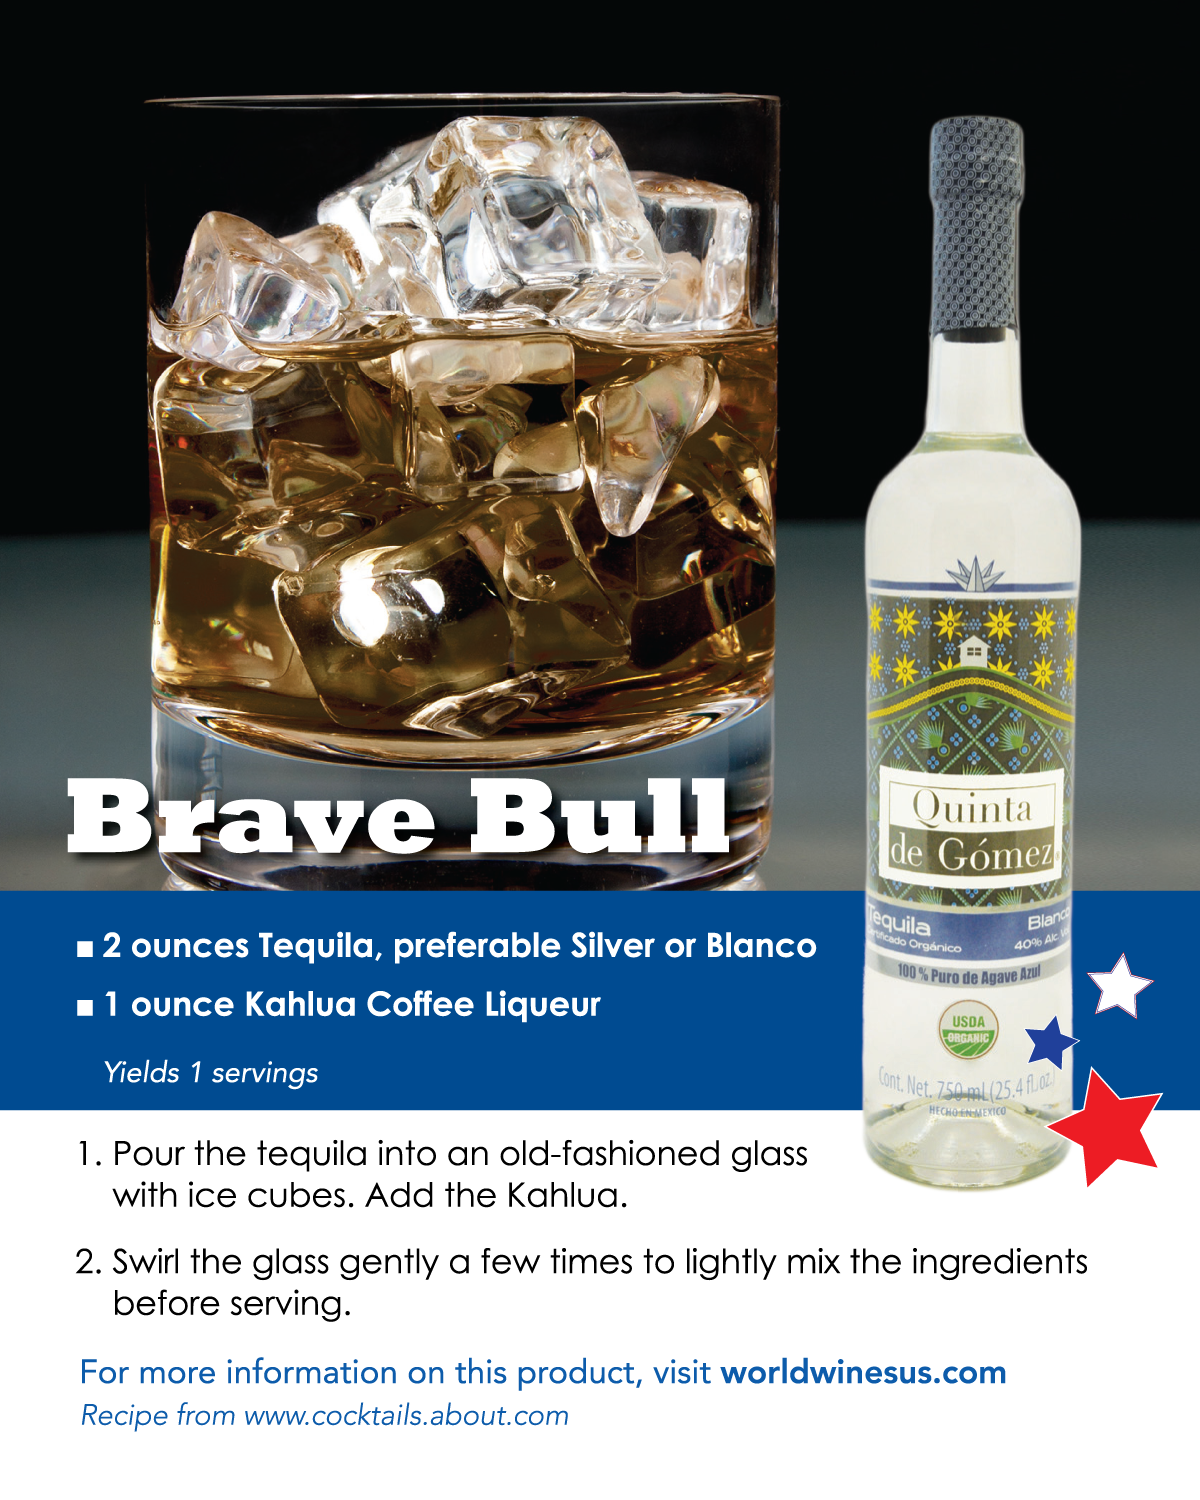 Attention tequila and coffee lovers, I have the perfect drink for you: the Brave Bull! All you simply need is tequila and Kahlúa. A bit of an odd couple to pair huh? Looking into the history of Kahlúa (derived from the Veracruz Nahuatl language), you will find that it originates from Mexico. The agave flavors from the tequila actually blend beautifully with the Kahlúa. Be sure to stock up on ice when serving this adventurous drink because your guests will surely be coming back for more!